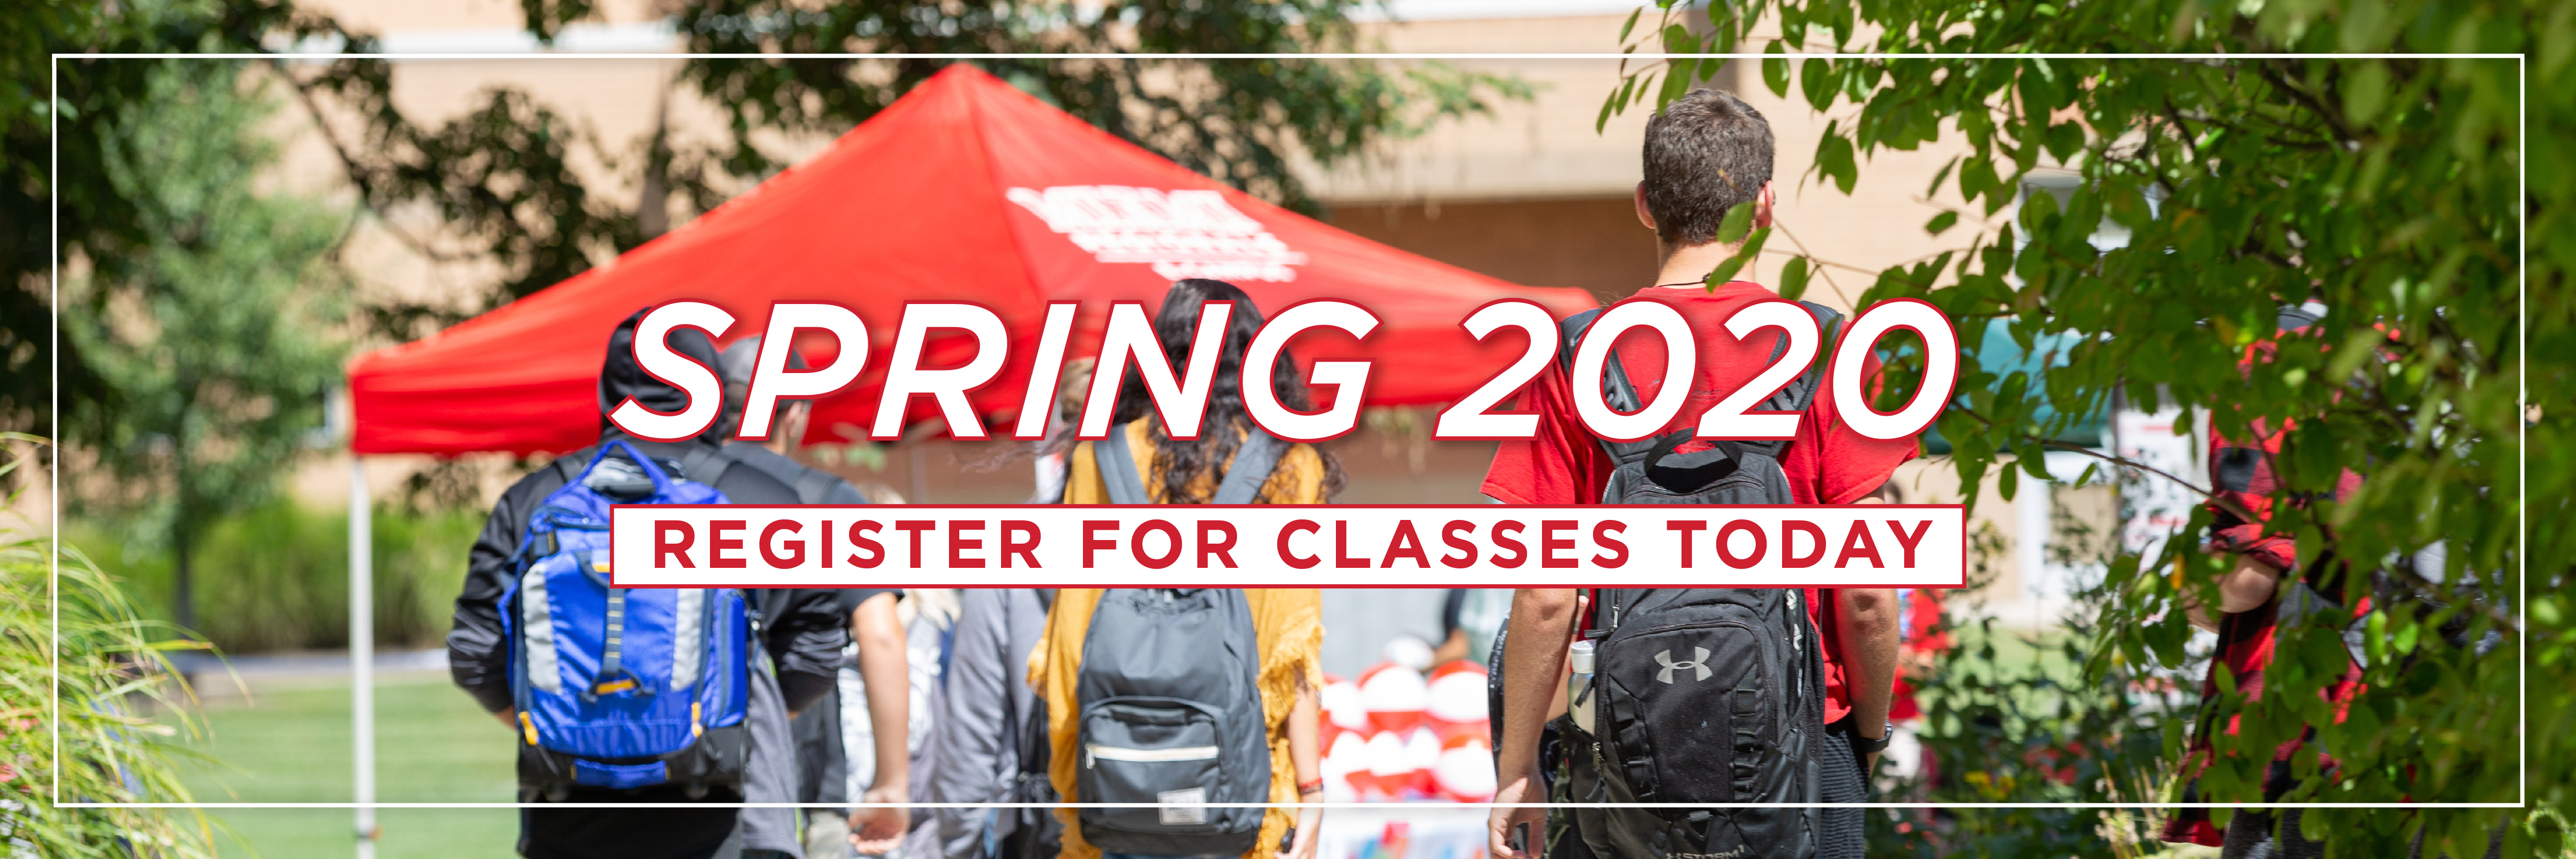 Spring 2020. Register for Classes Today